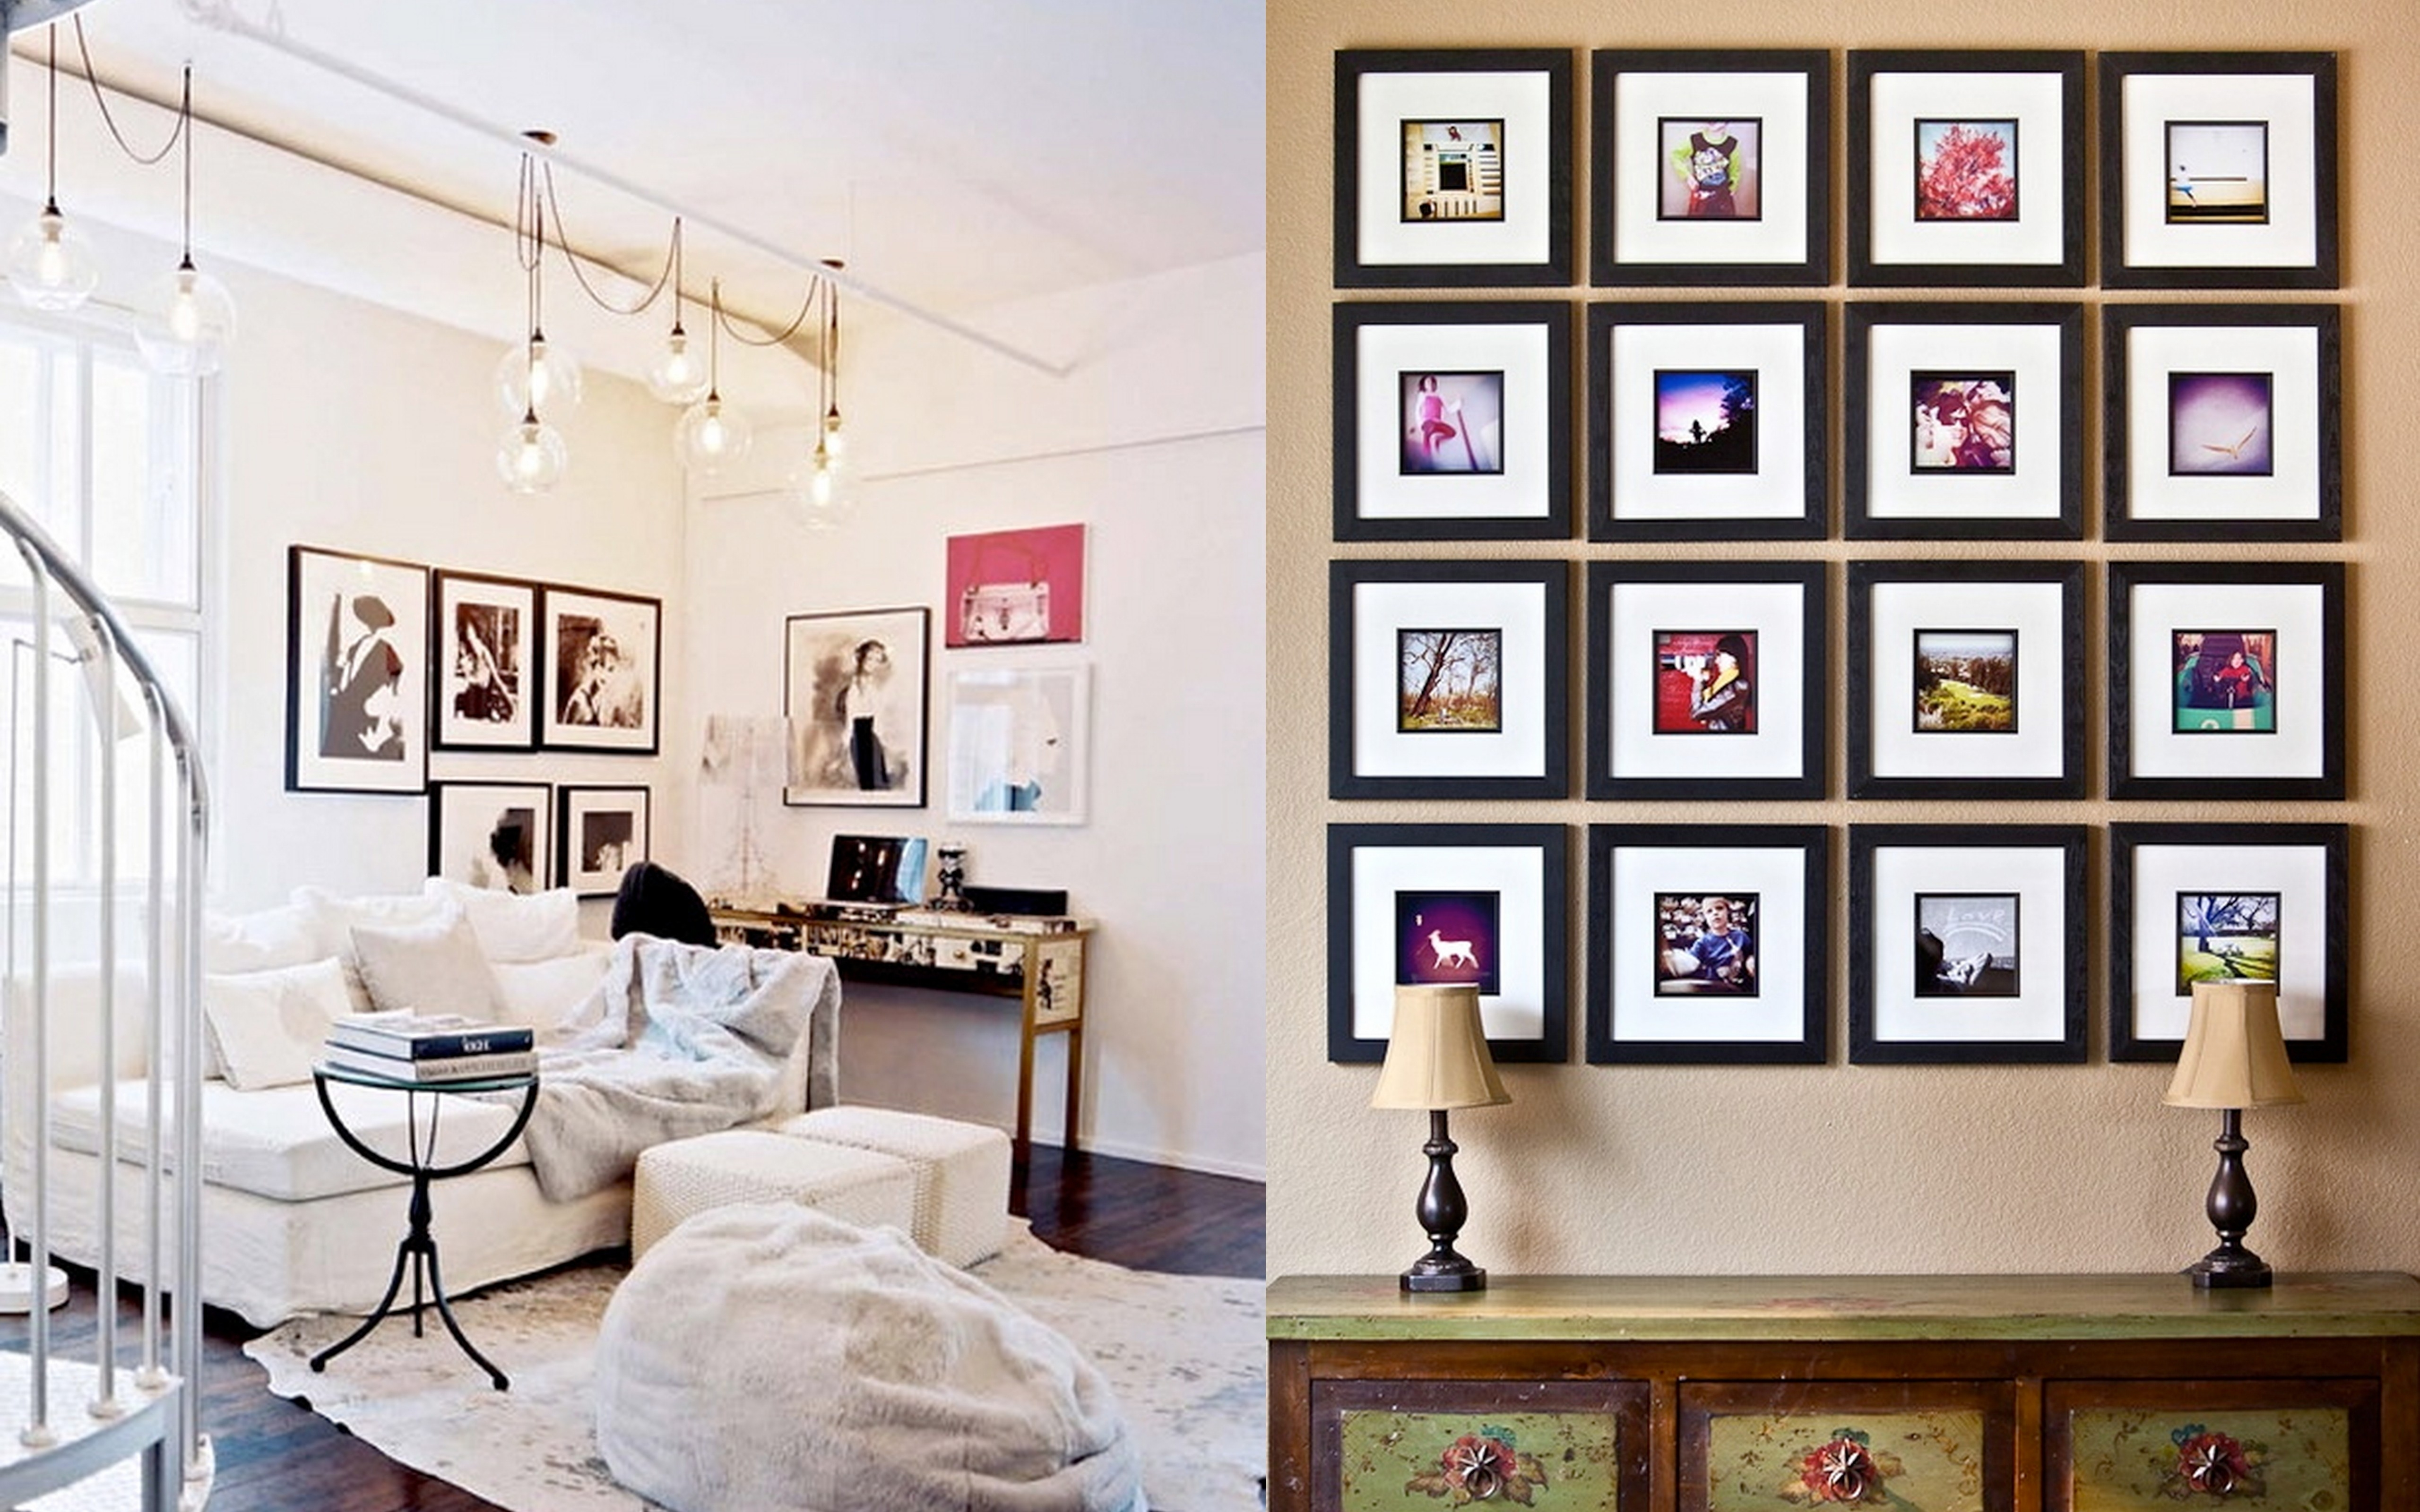 Sofa Ideas. Wall Decor Photo Frames - Best Home Design Interior 2018 with Cheap Framed Wall Art (Image 16 of 20)